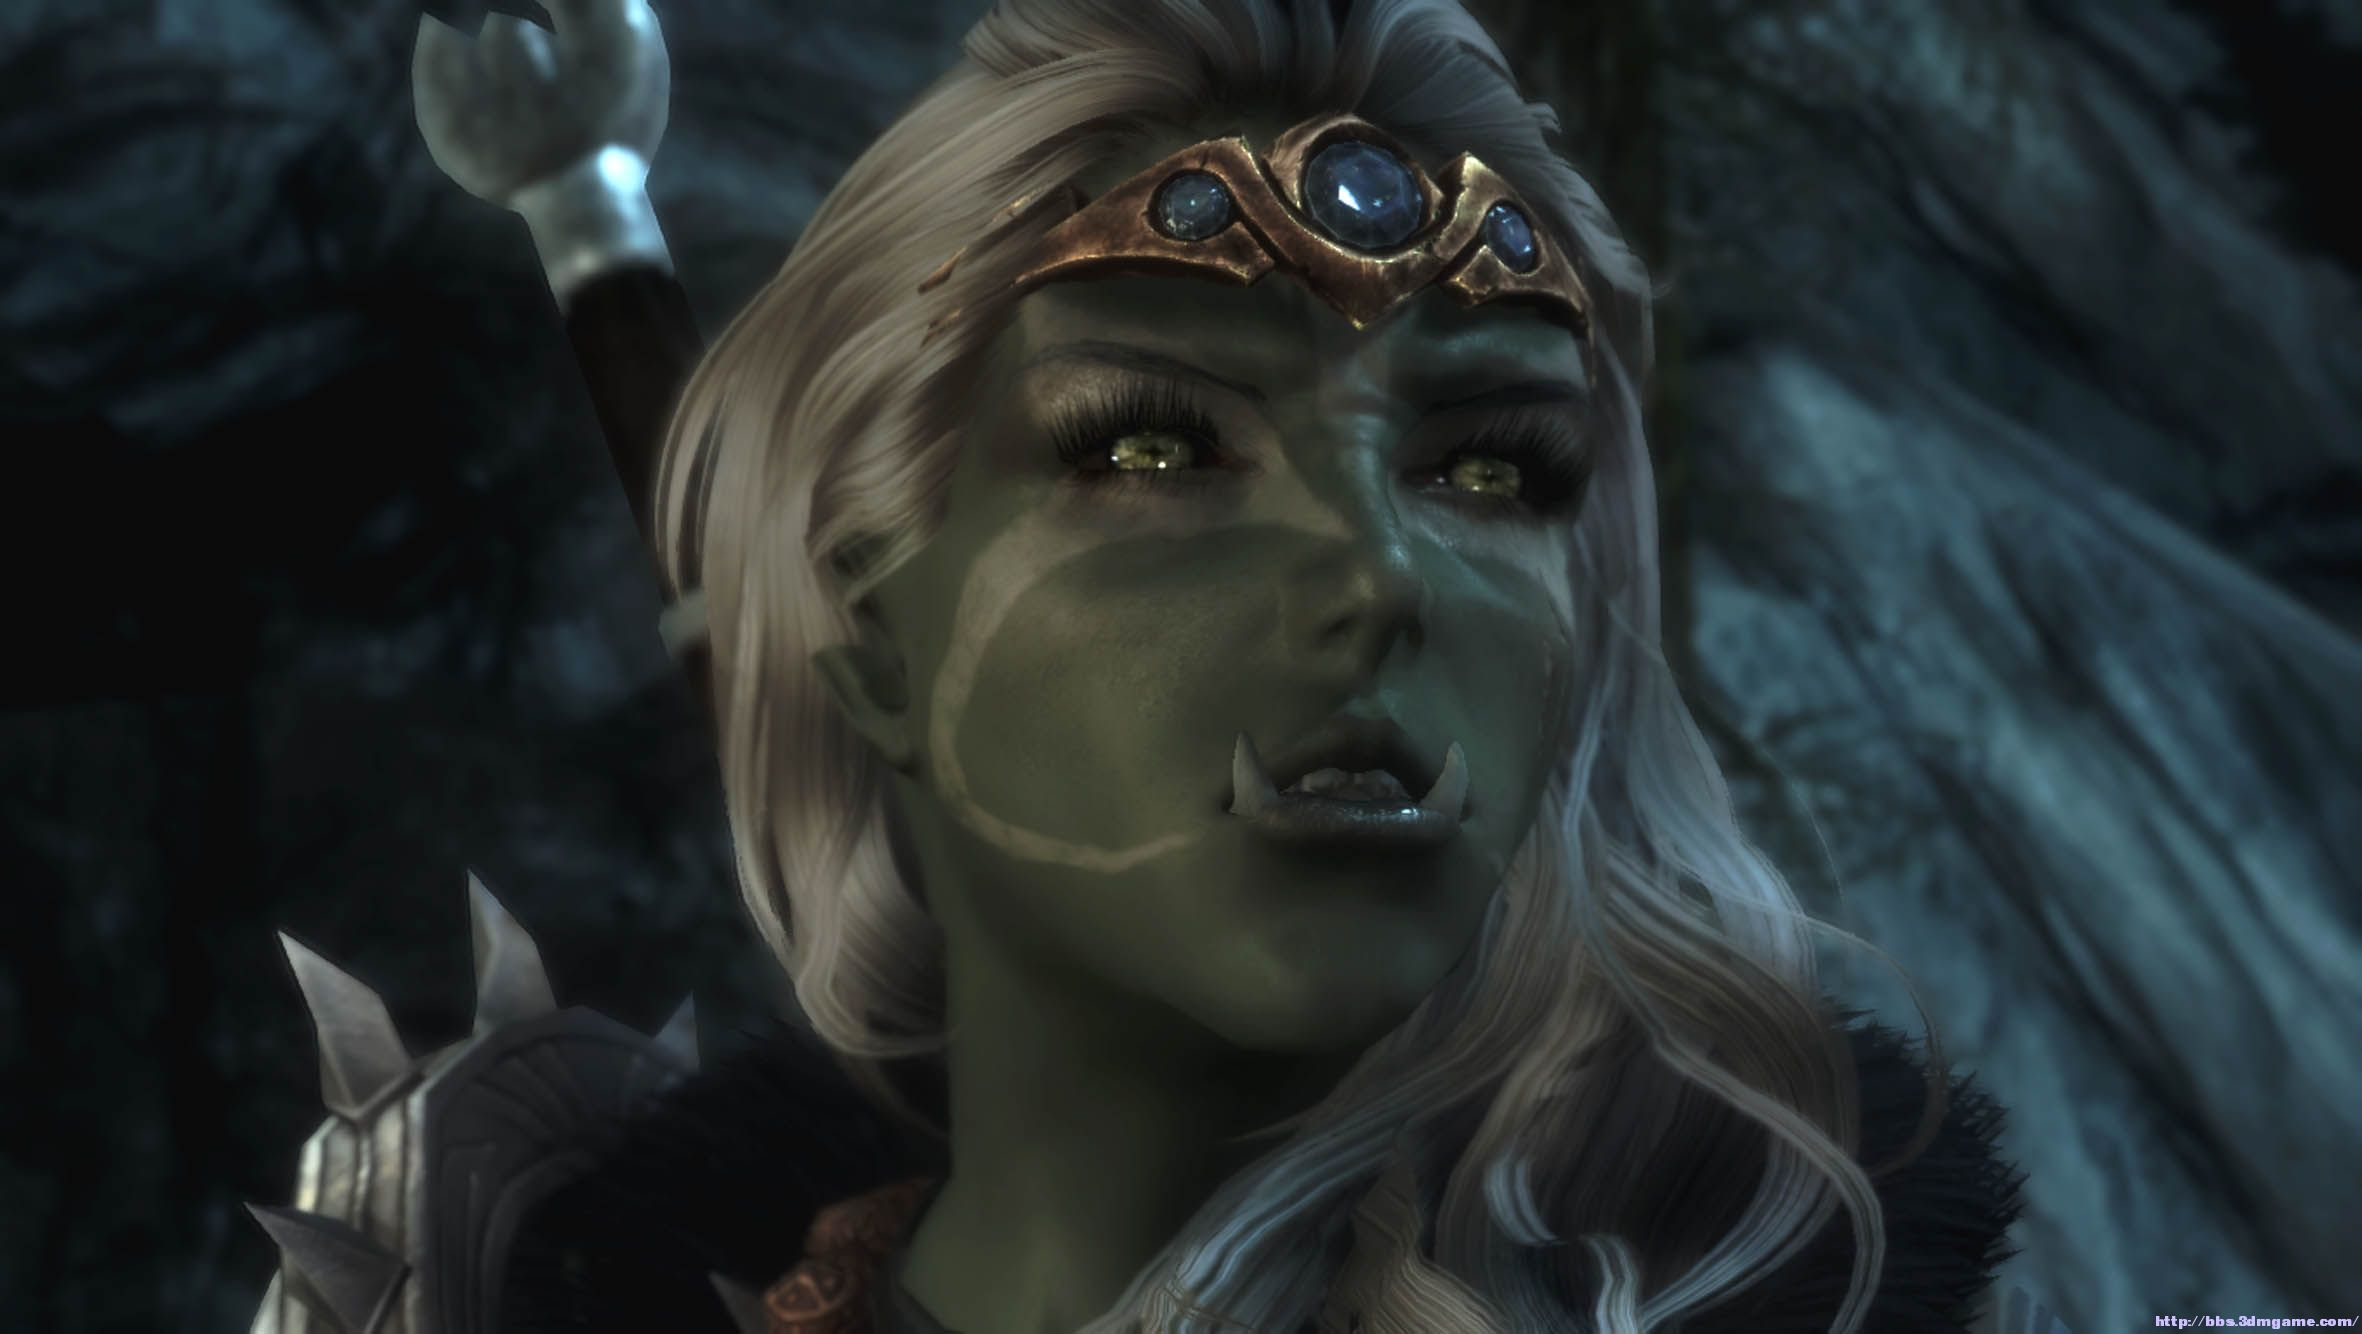 Female elf and orcs sex scenes